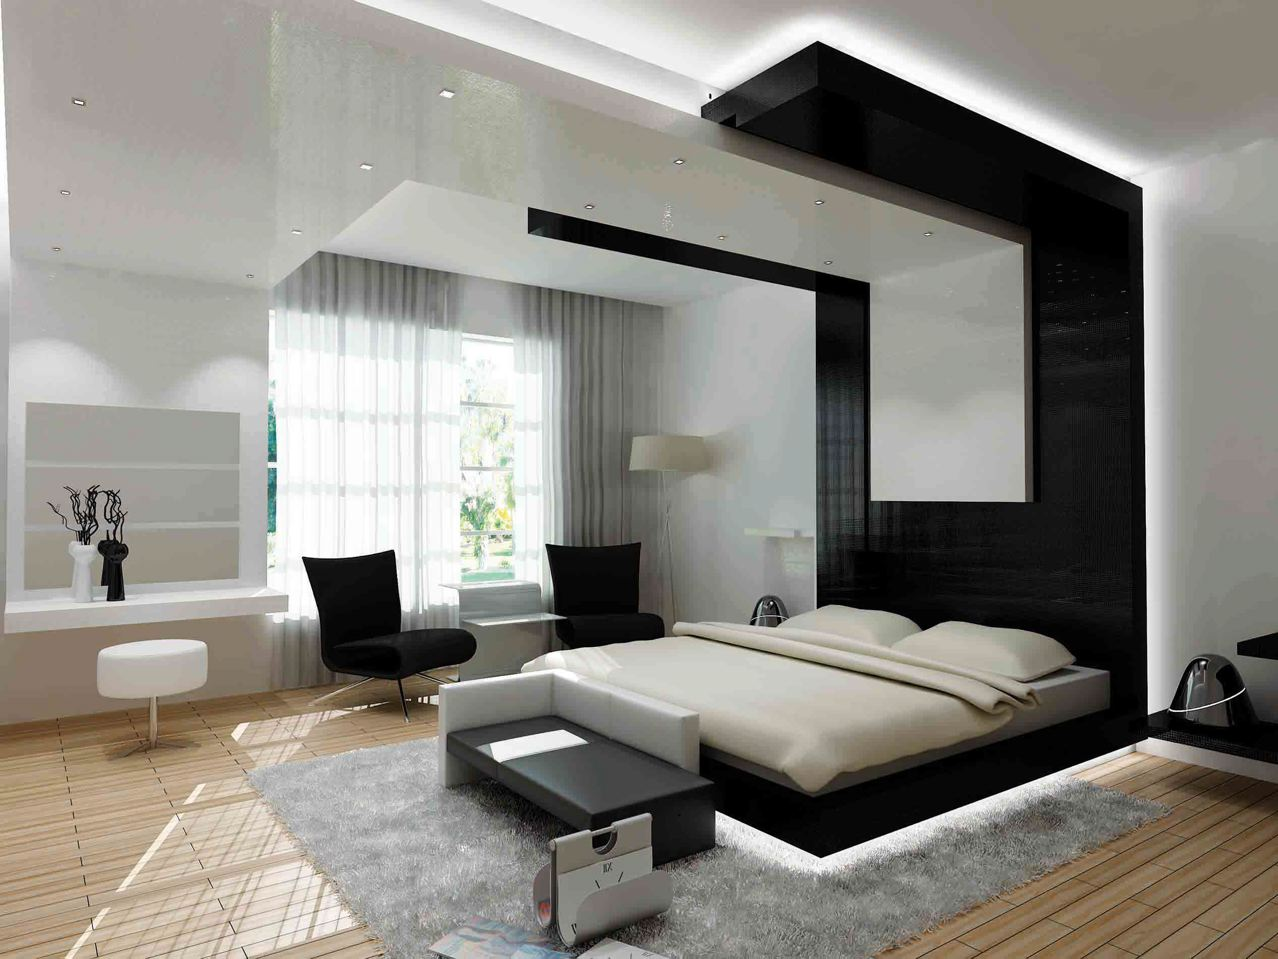 30 Contemporary Bedroom Design For Your Home - The WoW Style on Room.decor  id=62386